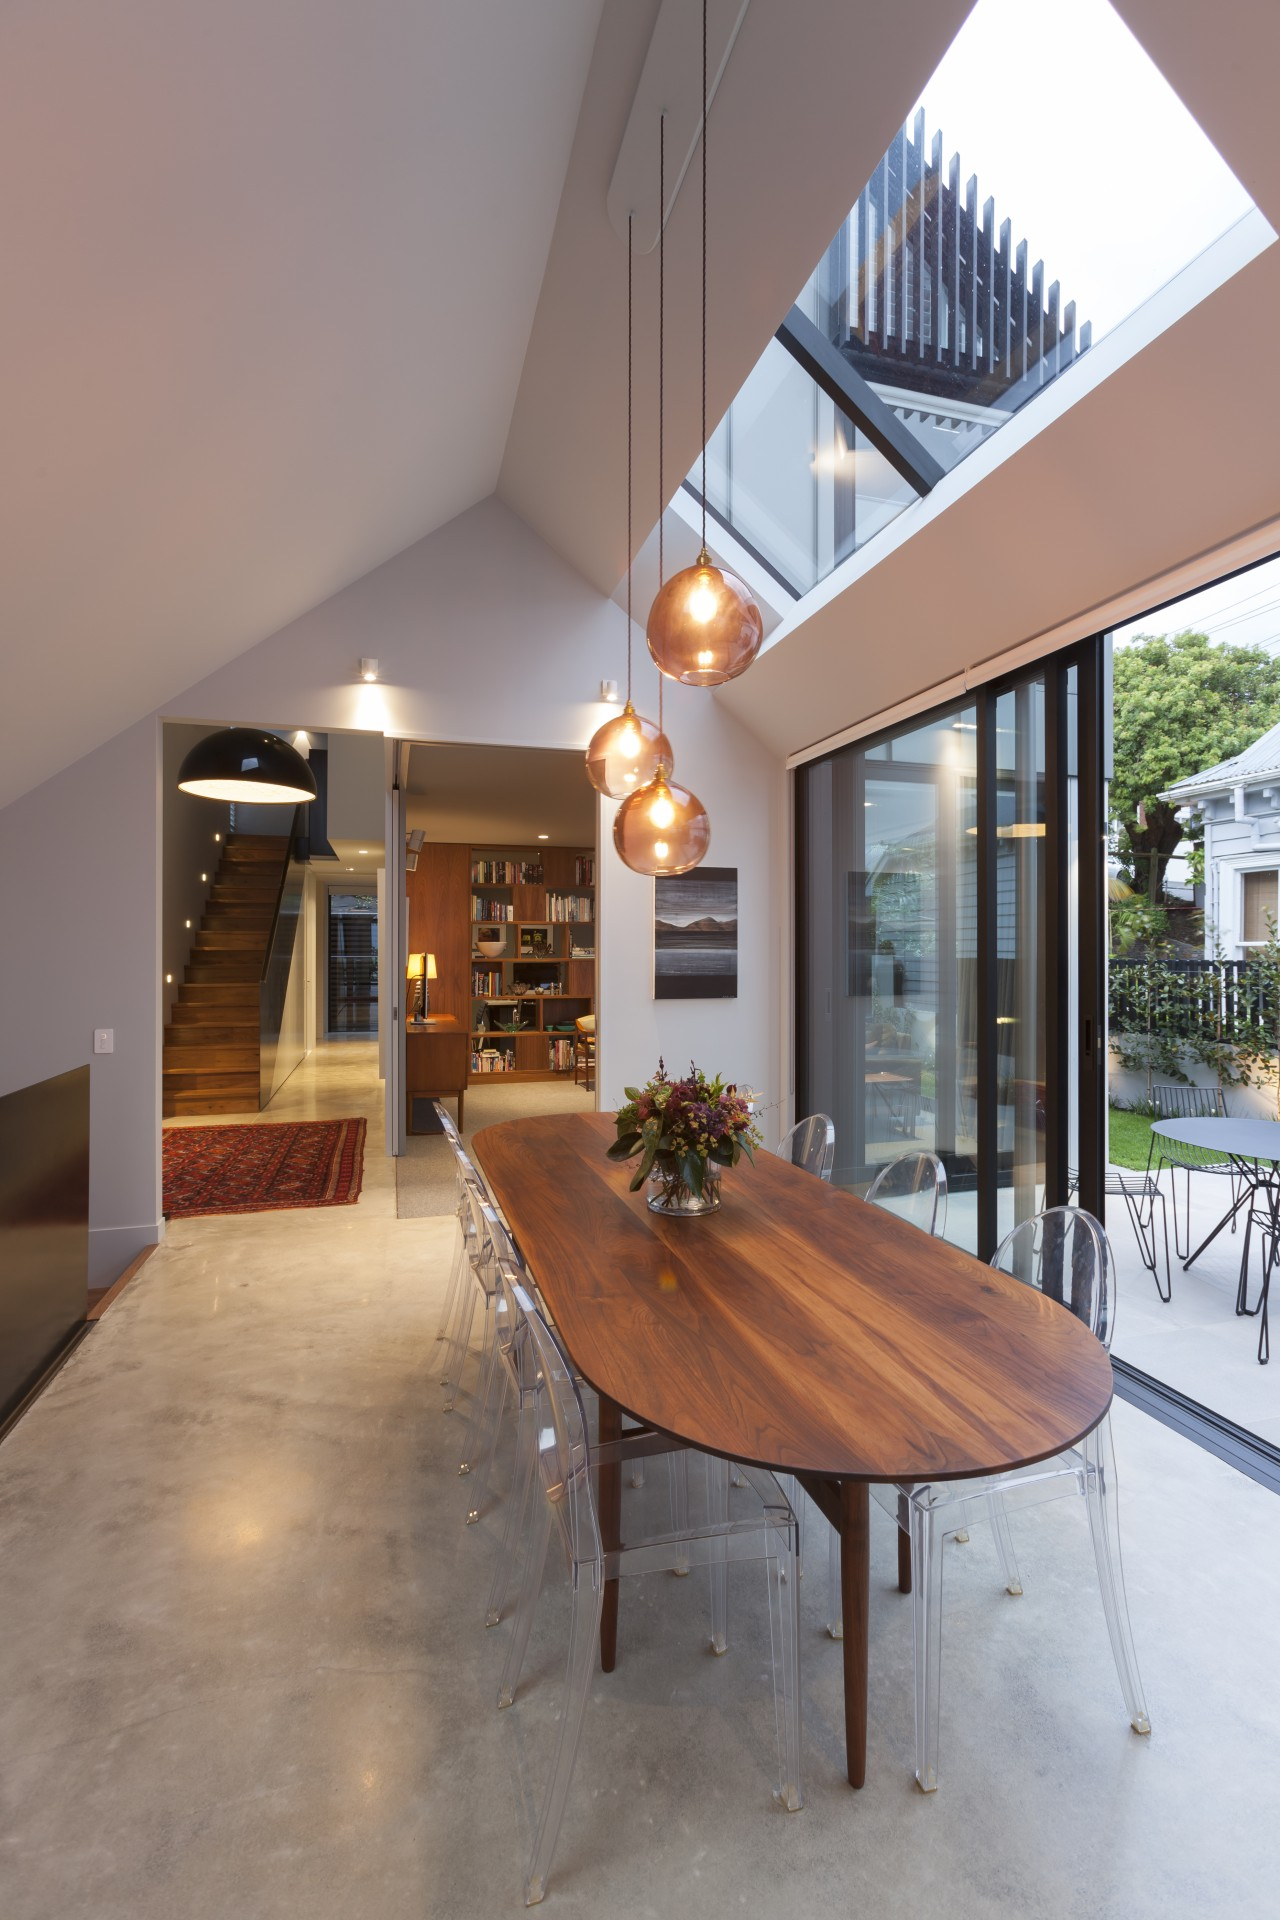 The garden arrangement formed along the northern elevation apartment, architecture, building, ceiling, daylighting, dining room, floor, flooring, furniture, hardwood, home, house, interior design, living room, loft, property, real estate, residential area, roof, room, table, wood, wood flooring, gray